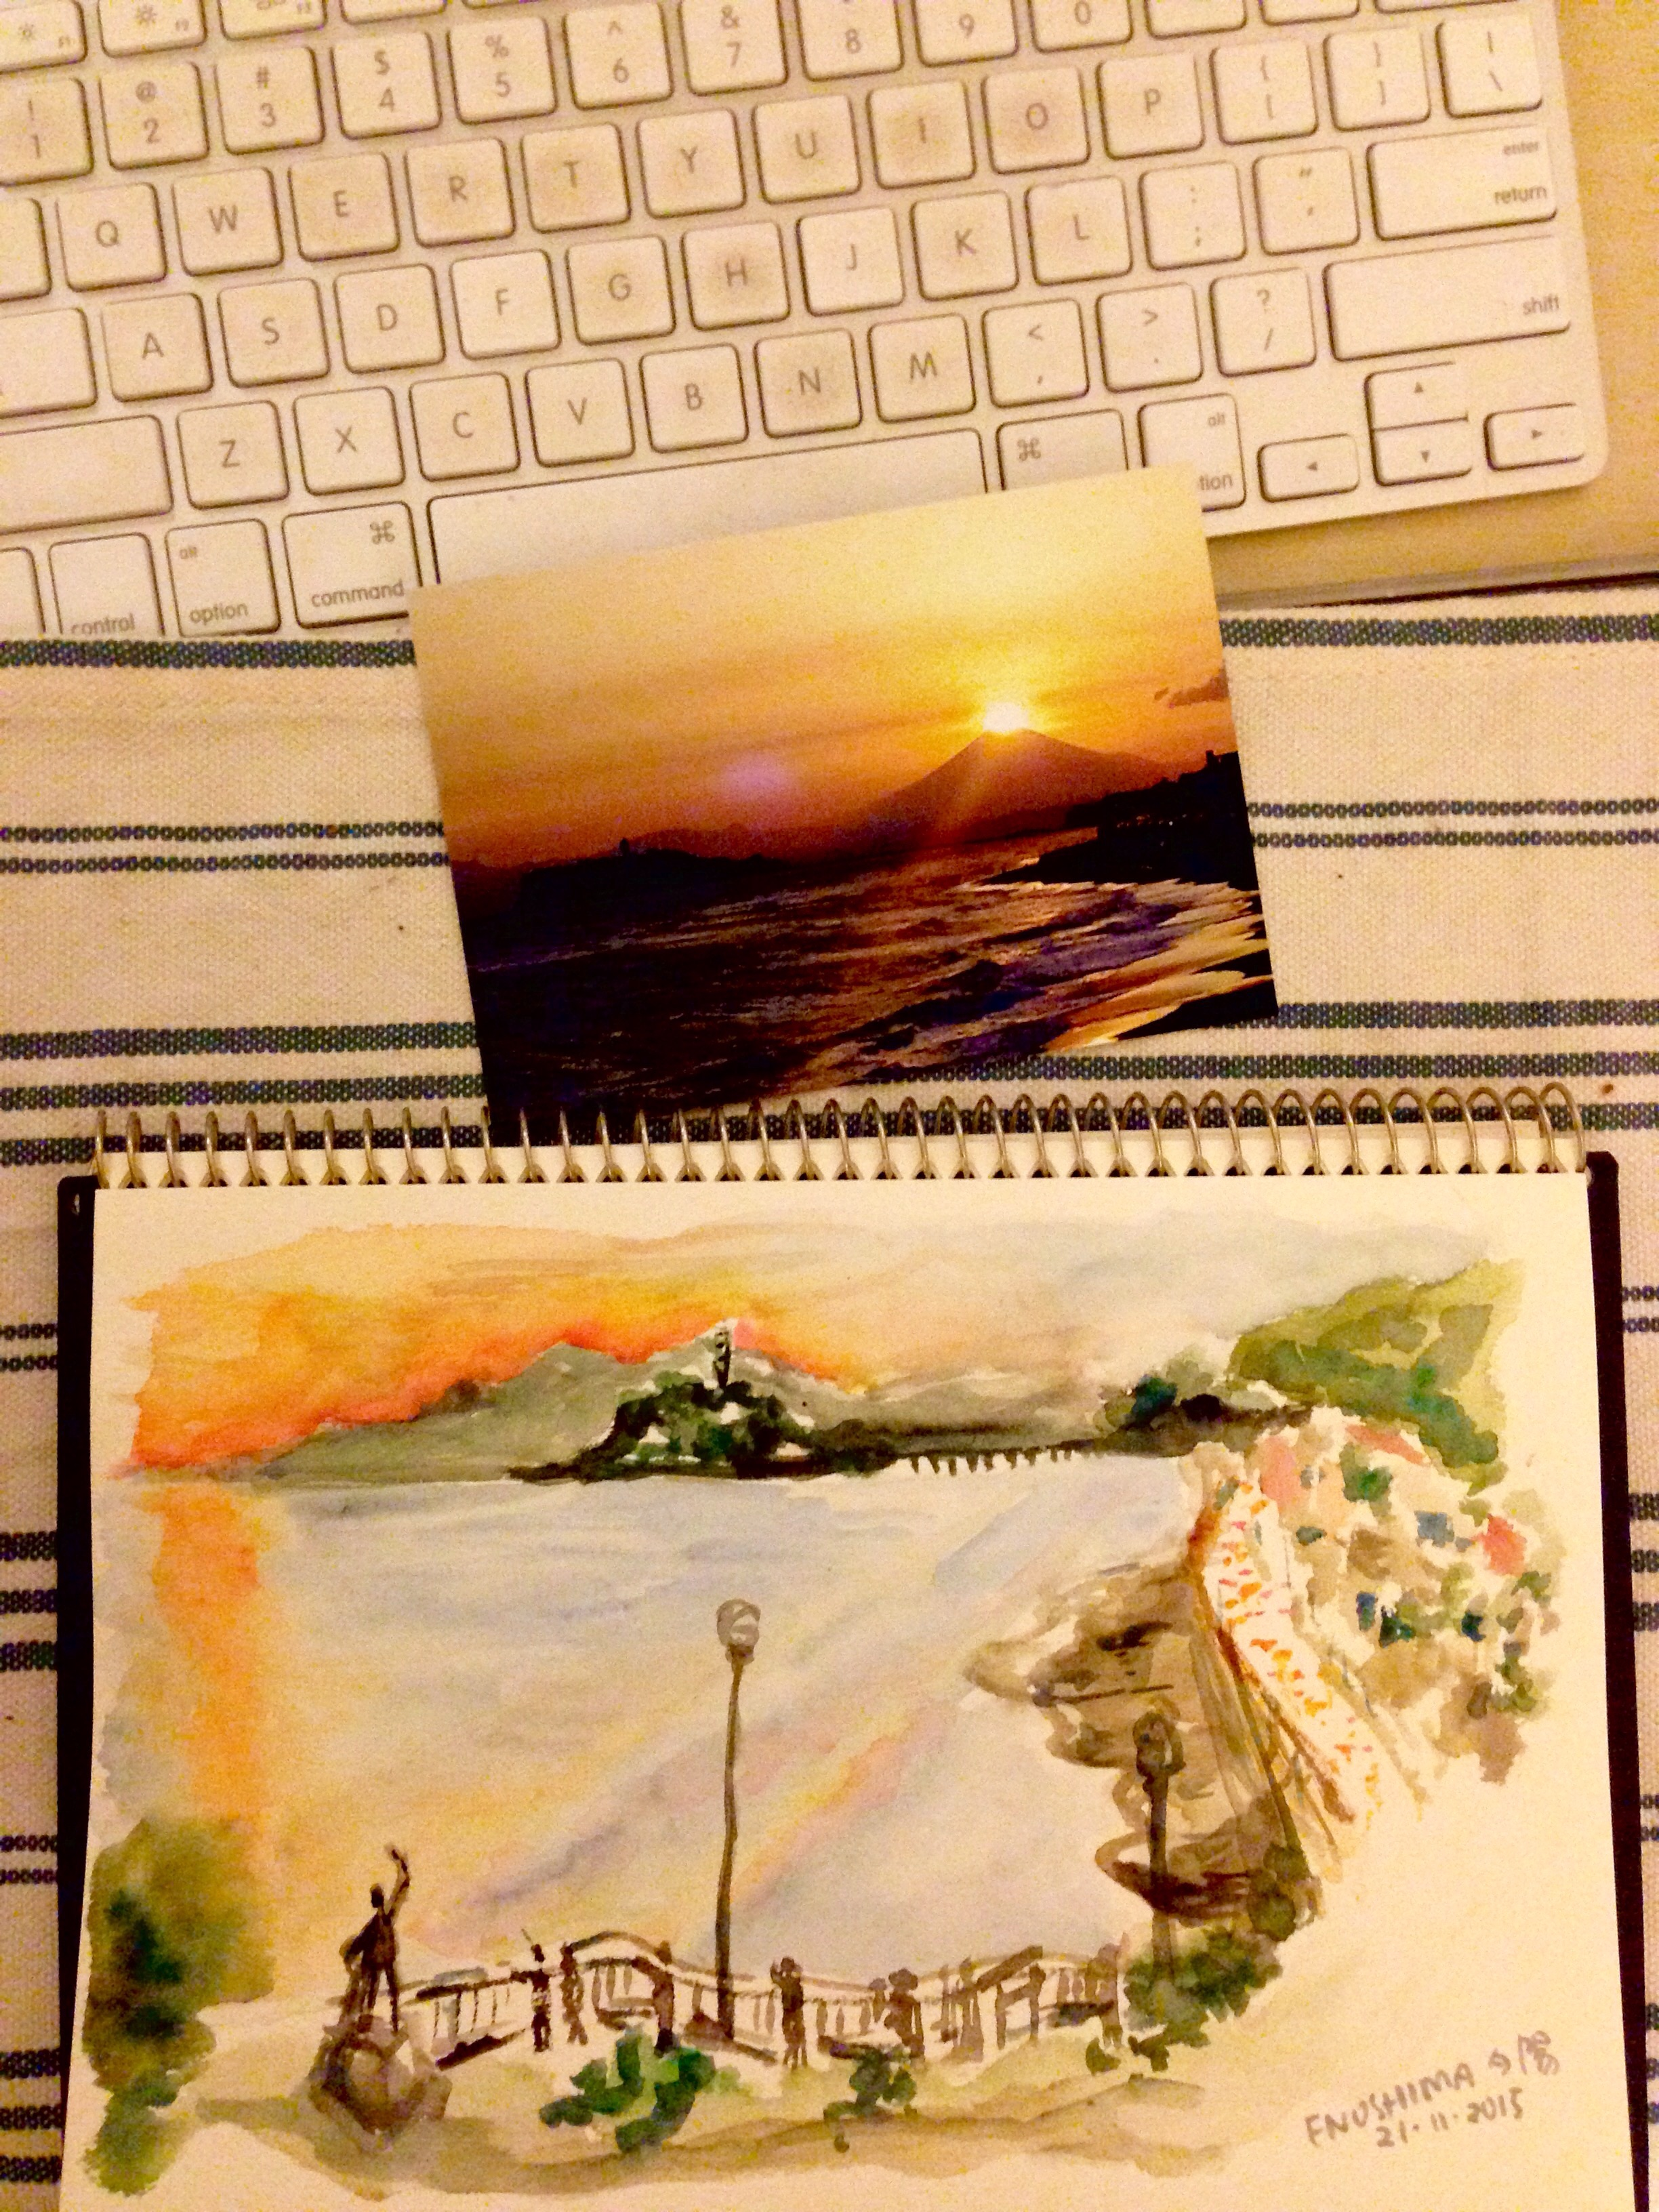 An old man came and asked about my painting and gave me a photo of Diamond Fuji, where the sun sets on Mount Fuji, taken on the same spot where I was at!